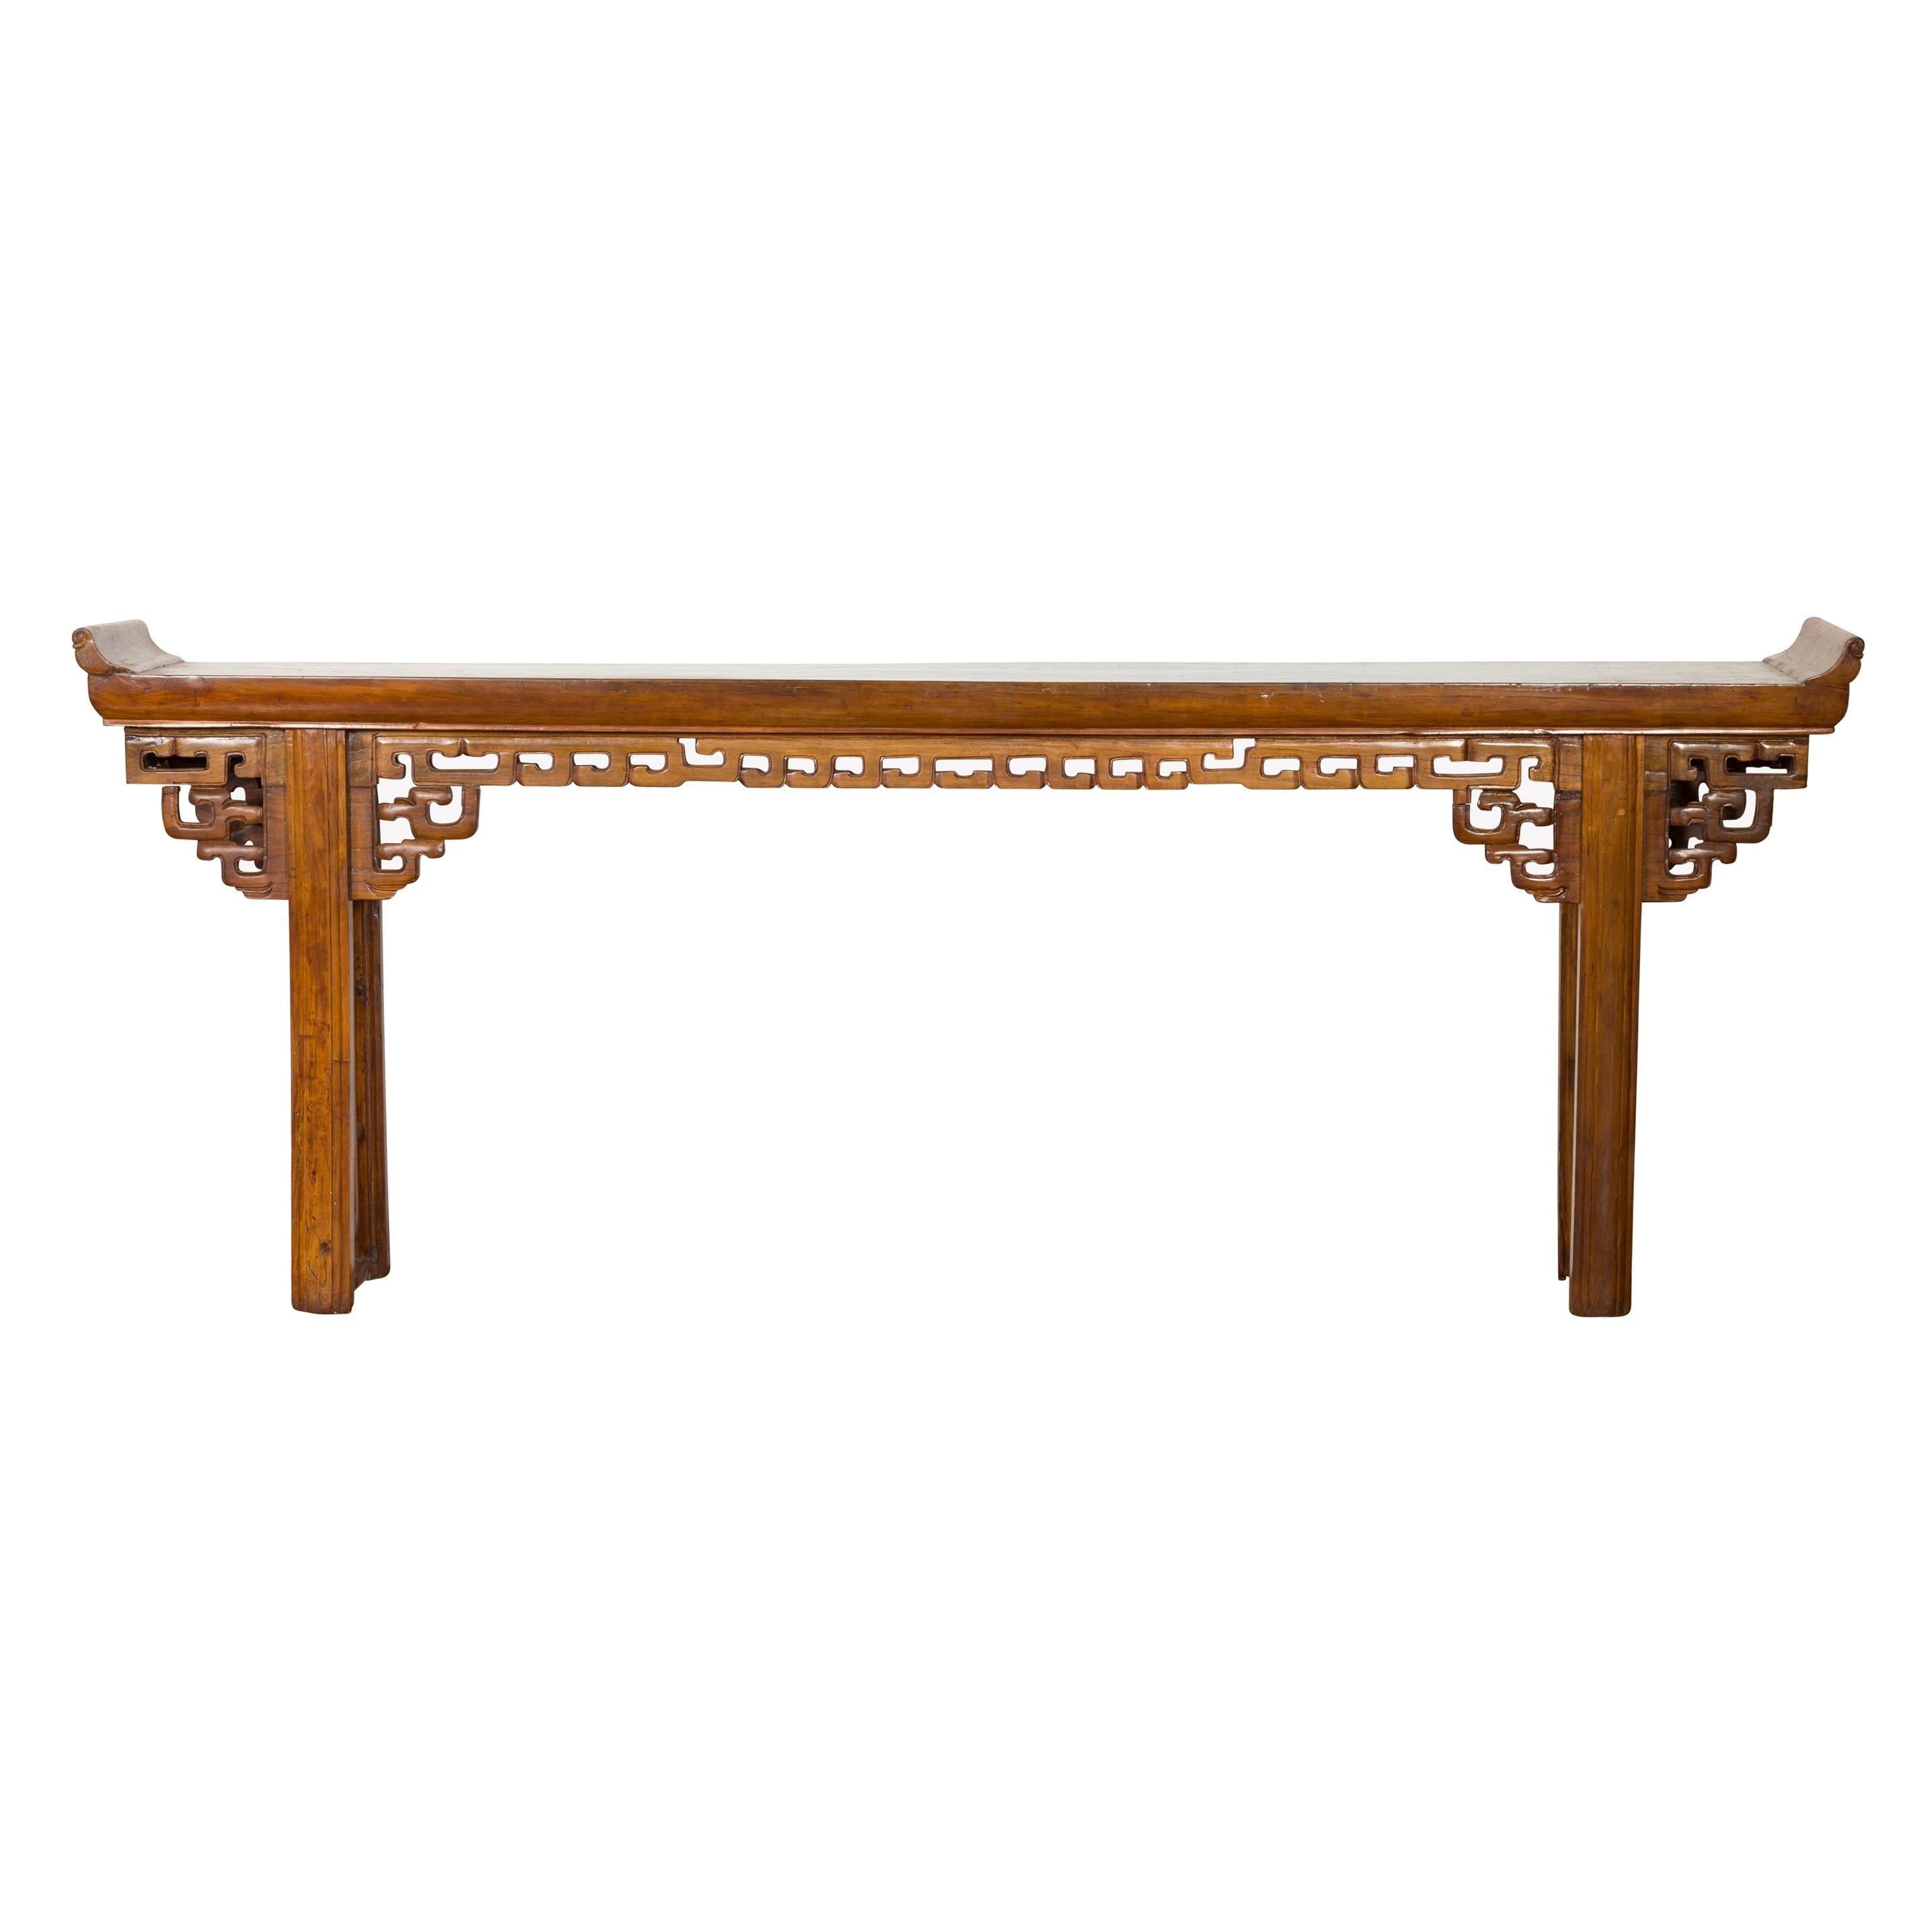 Chinese 19th Century Qing Dynasty Period Altar Console Table with Open Fretwork